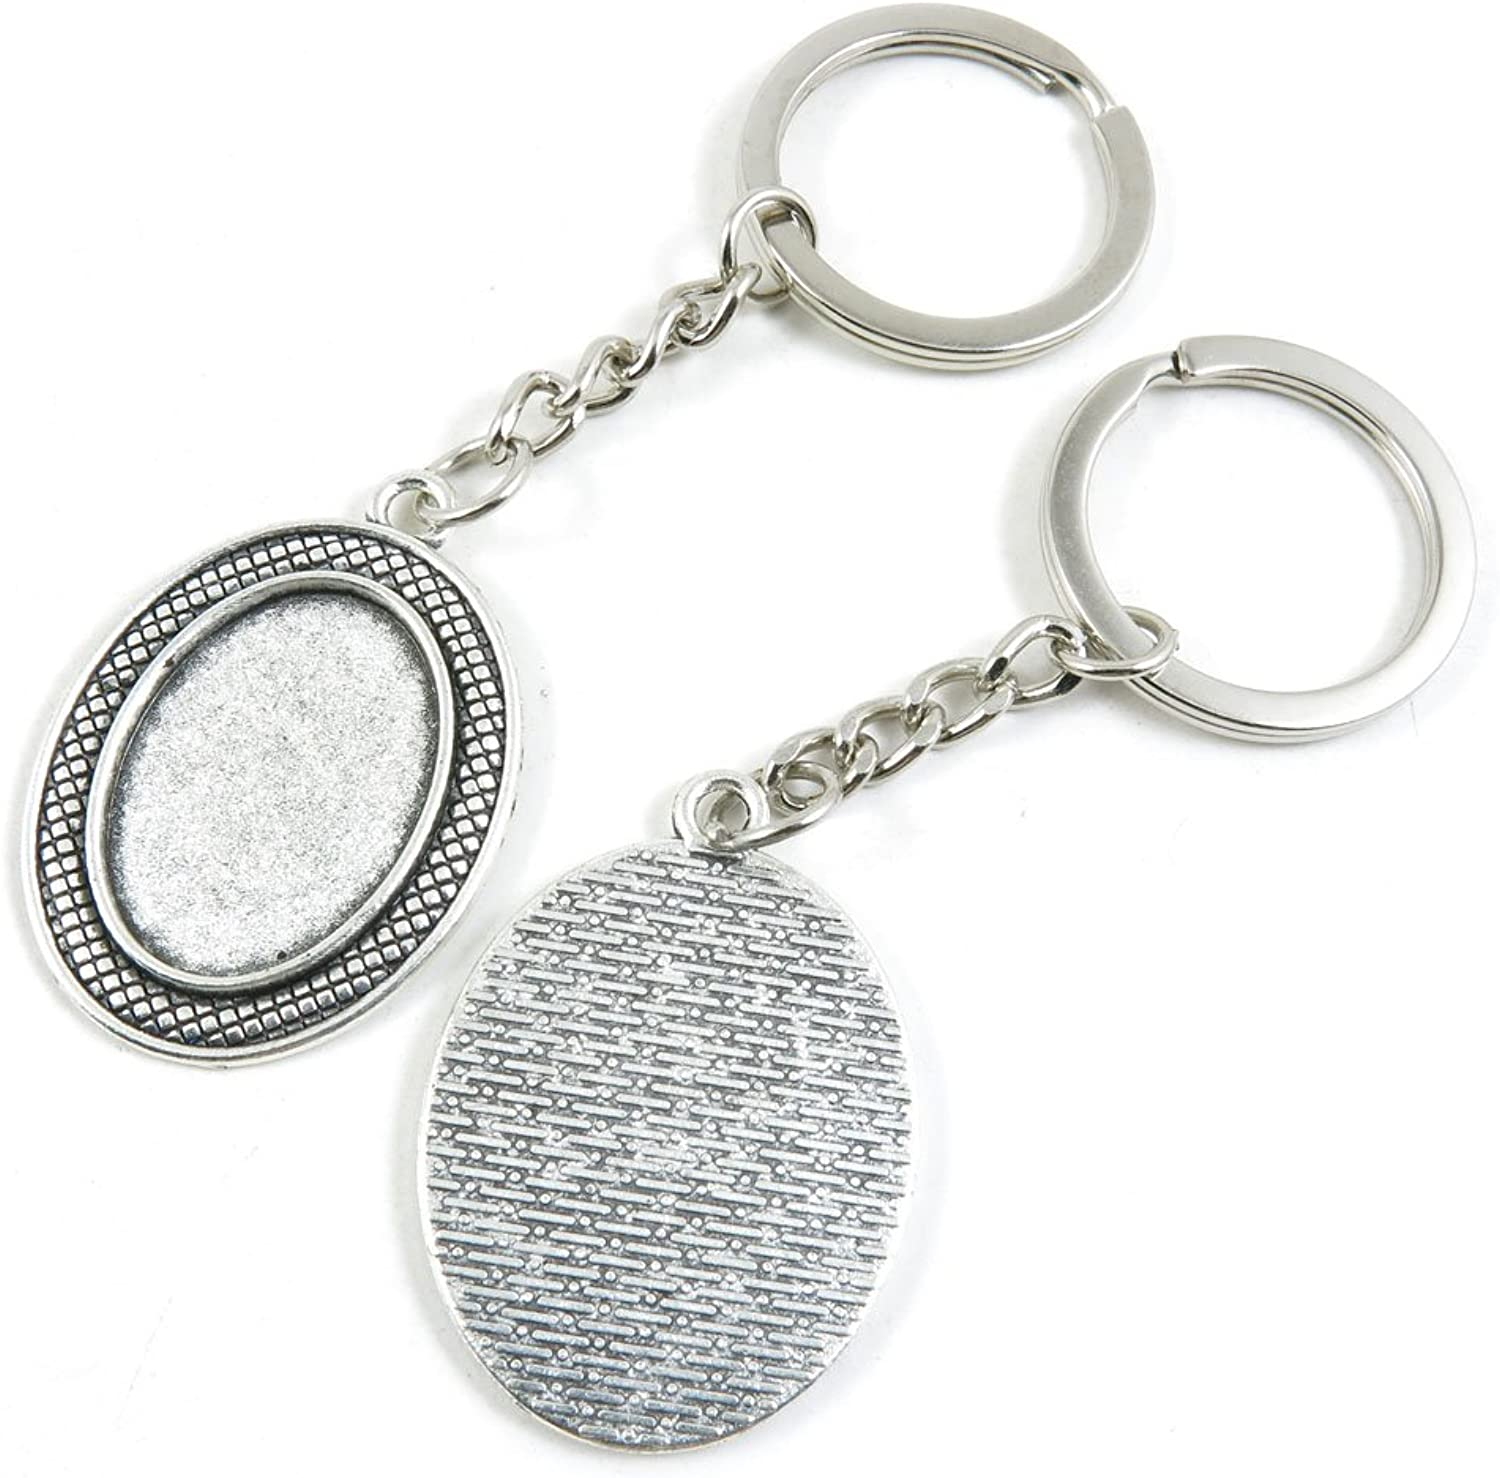 130 Pieces Fashion Jewelry Keyring Keychain Door Car Key Tag Ring Chain Supplier Supply Wholesale Bulk Lots G0EQ9 Oval Cabochon Base Blank 25x18mm